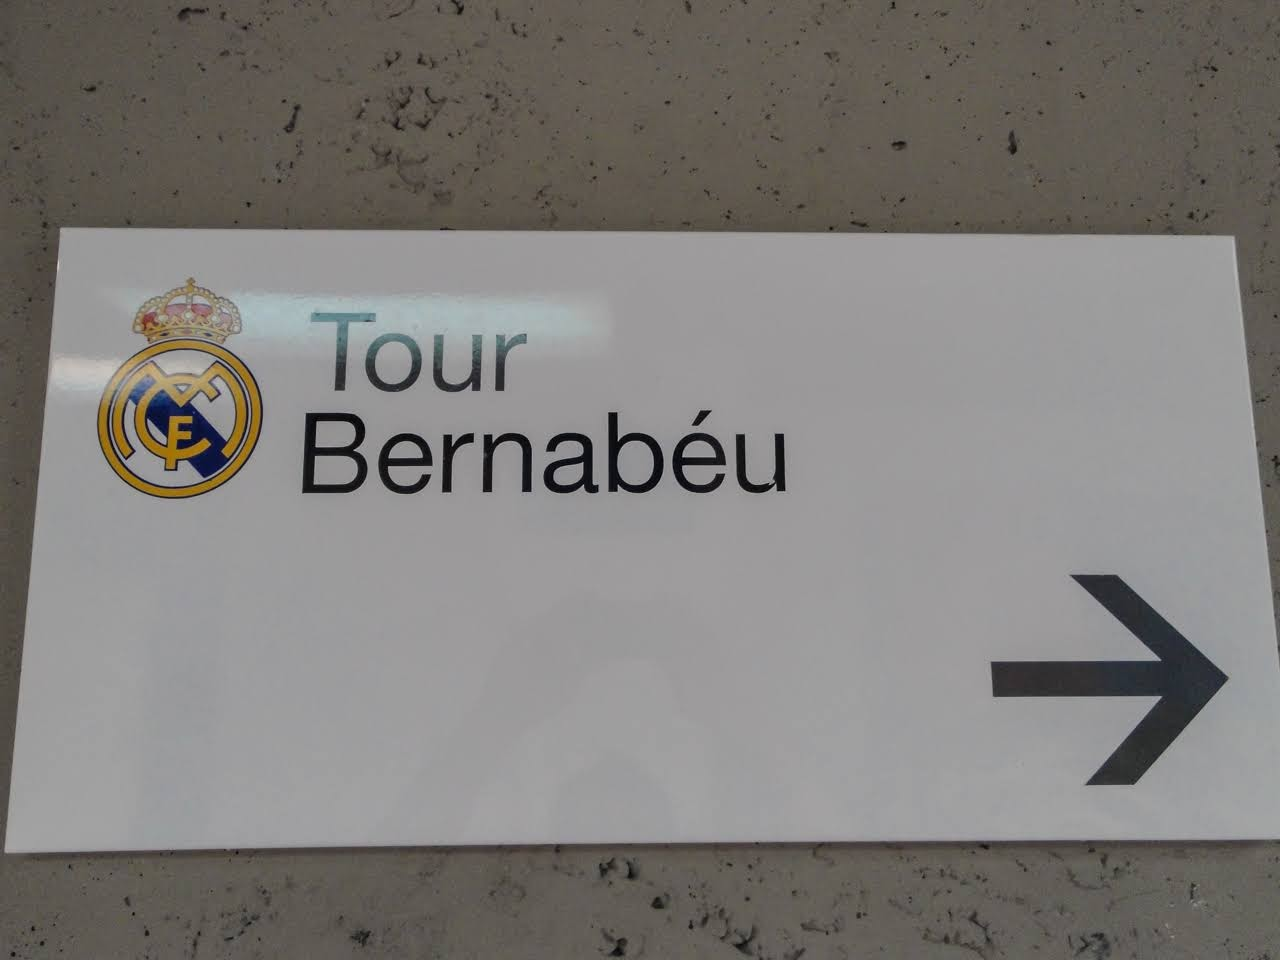 A sign for the Tour Bernabéu